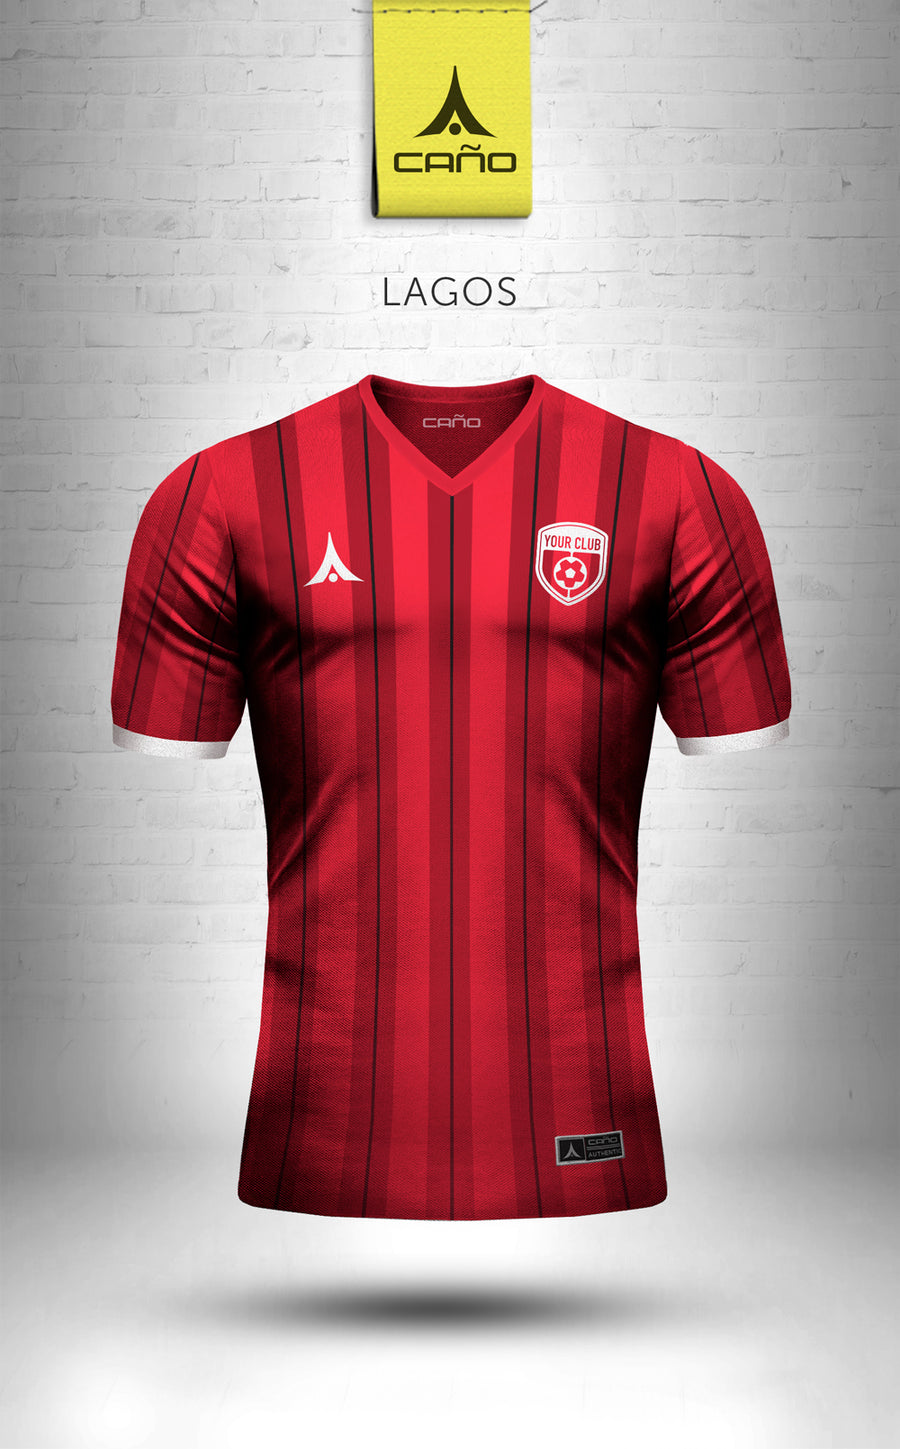 Lagos in red/black/white